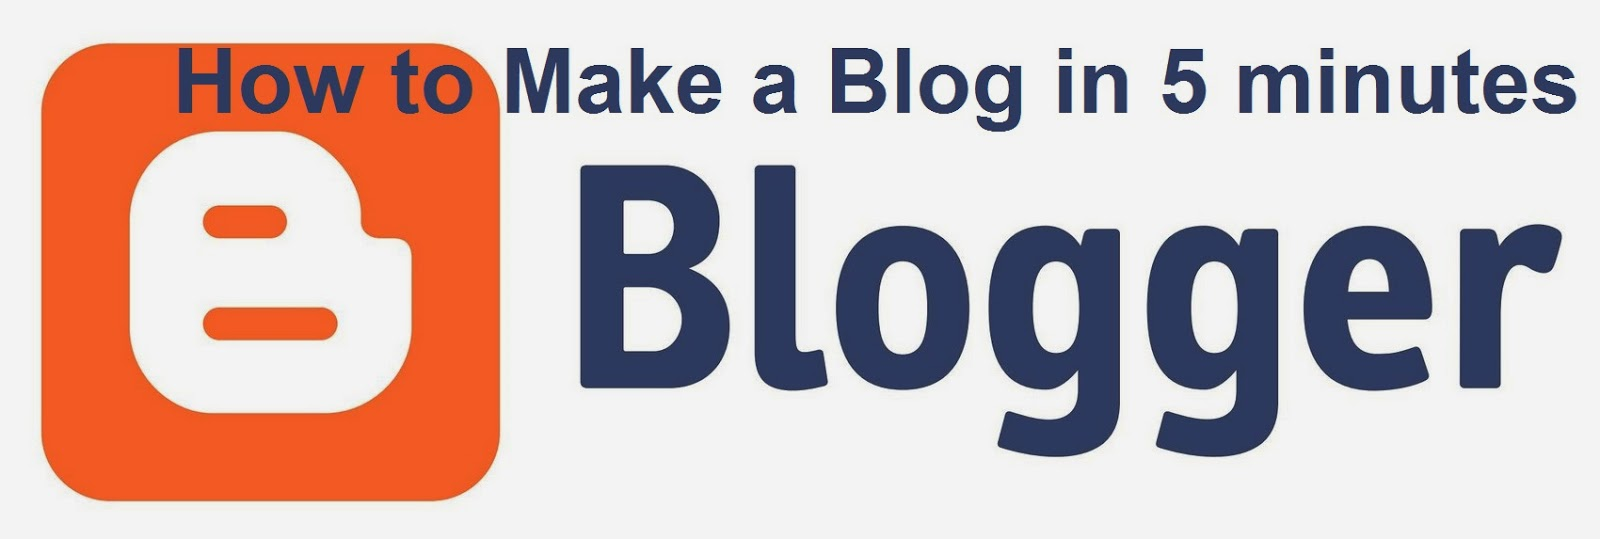 How to Make a Blog in 5 minutes : eAskme